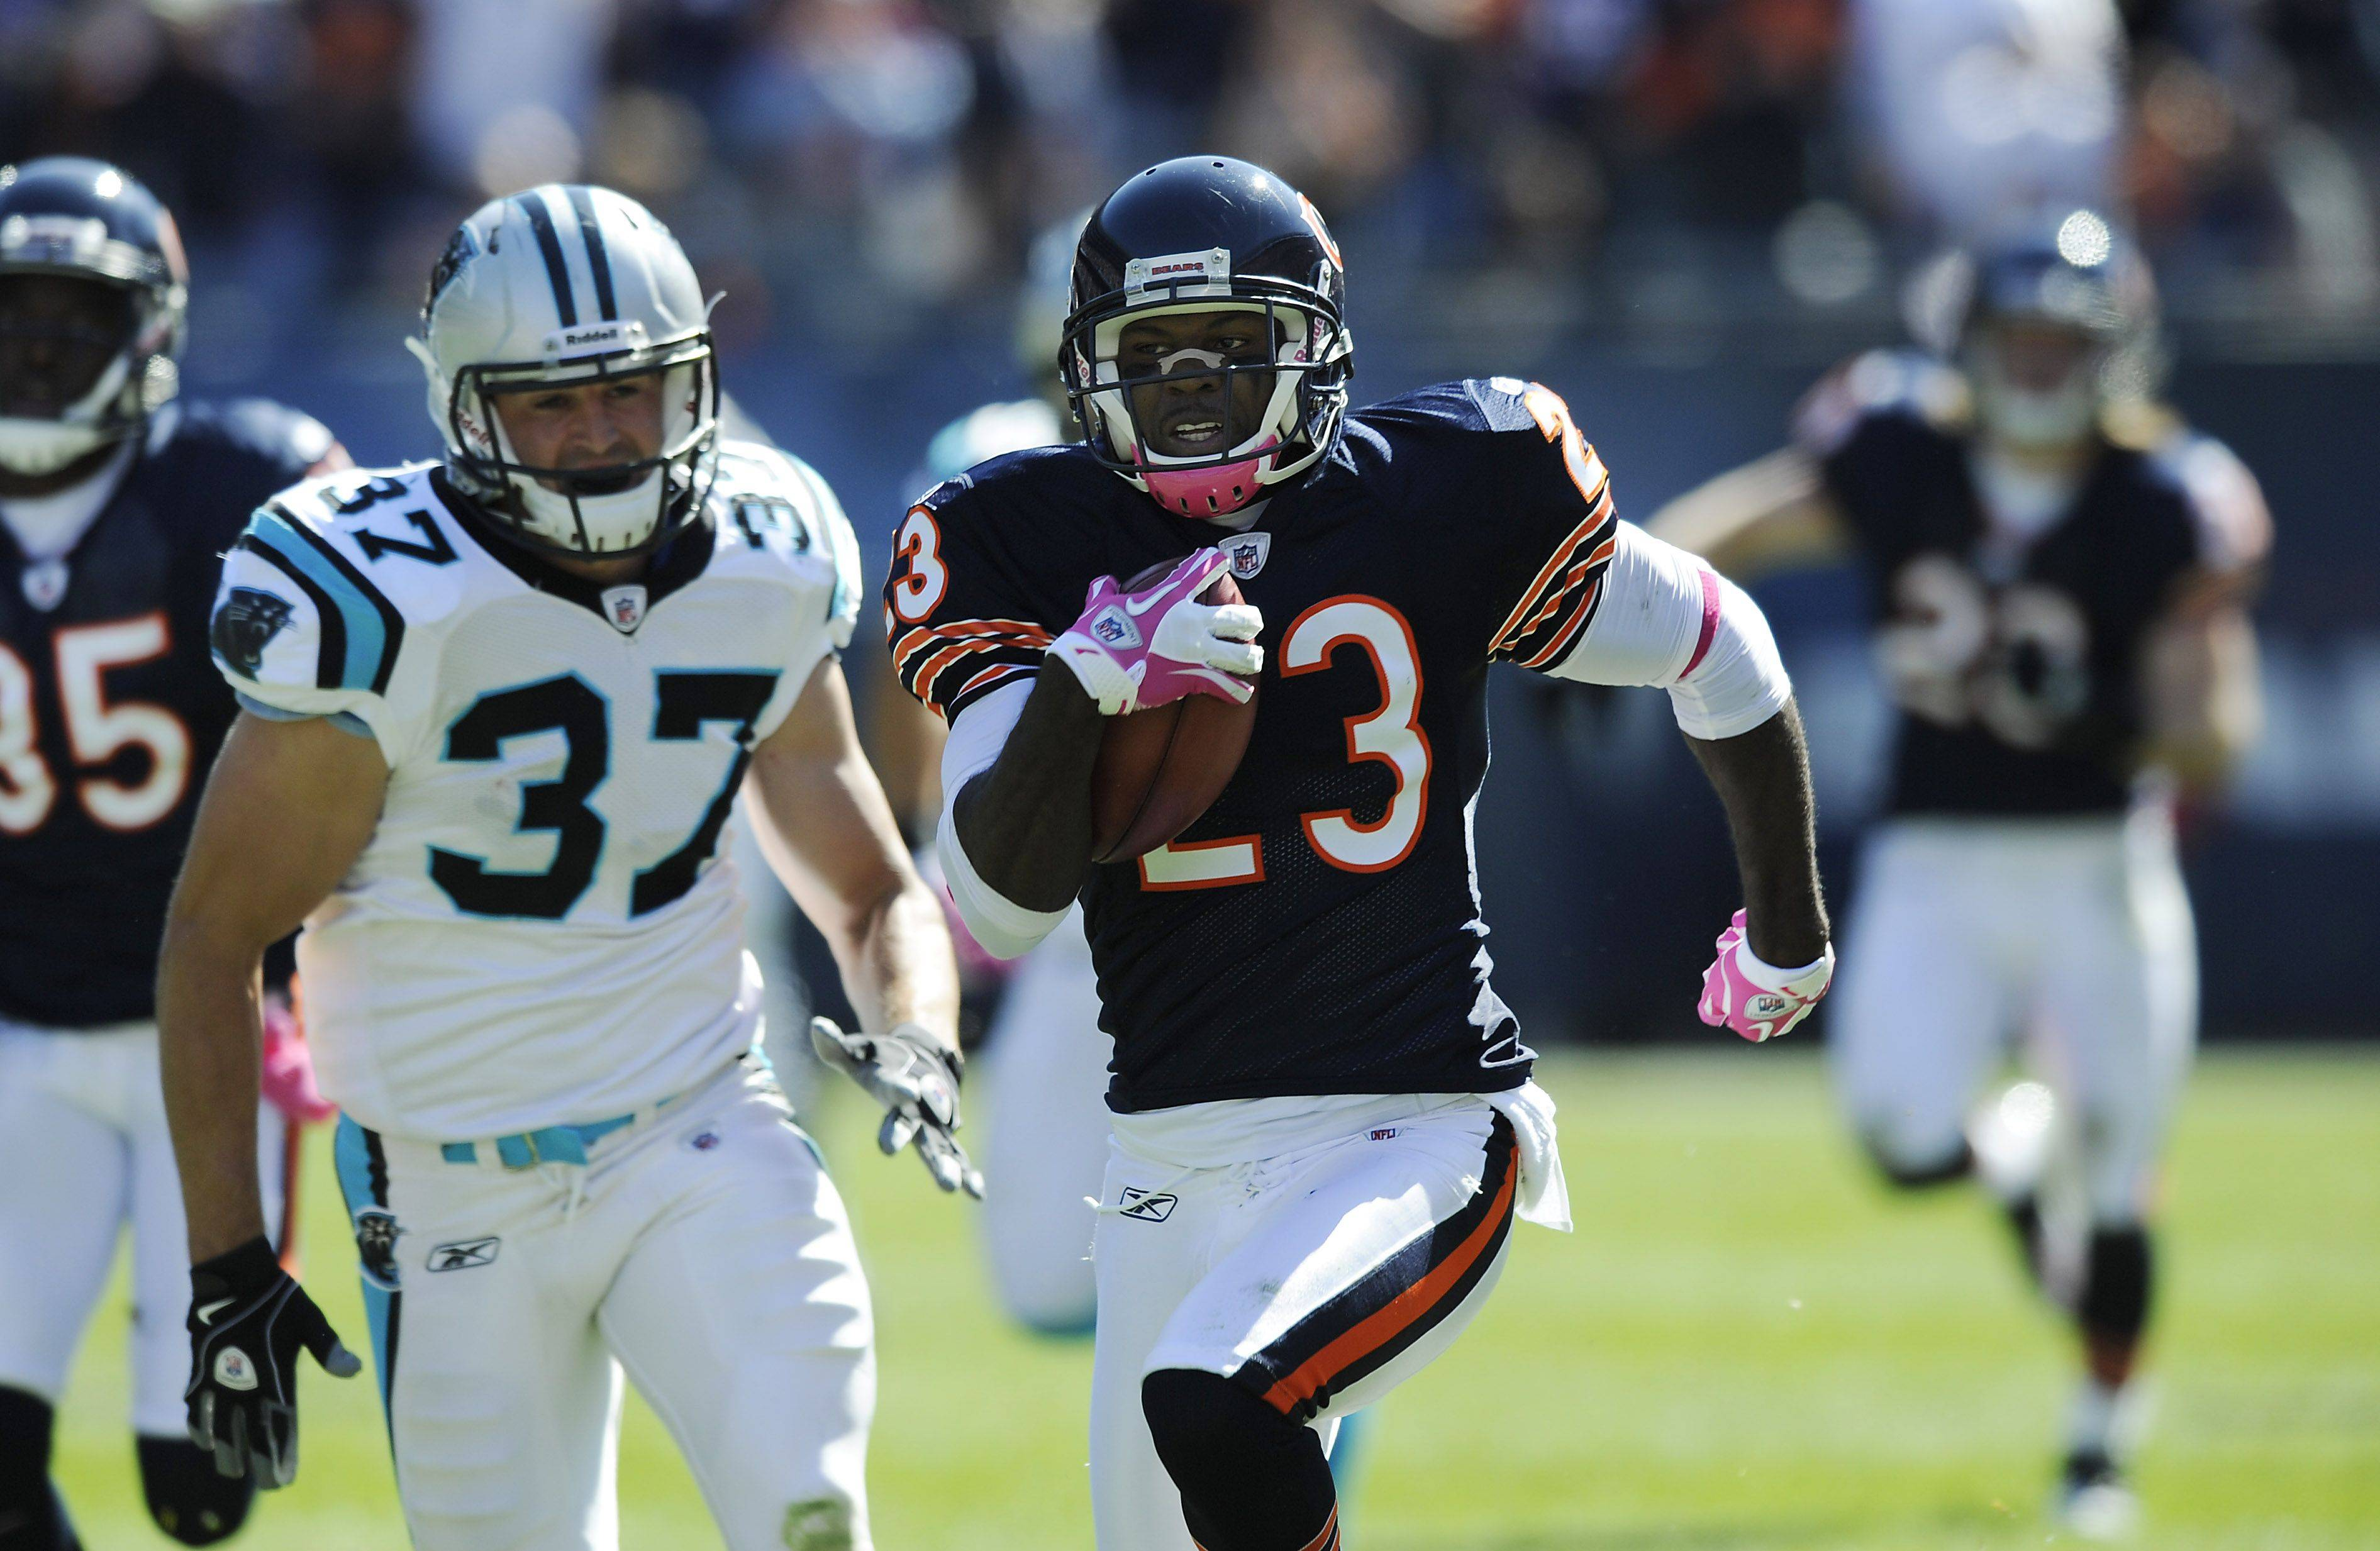 Bears Devin Hester runs back a second quarter punt return for a touchdown.